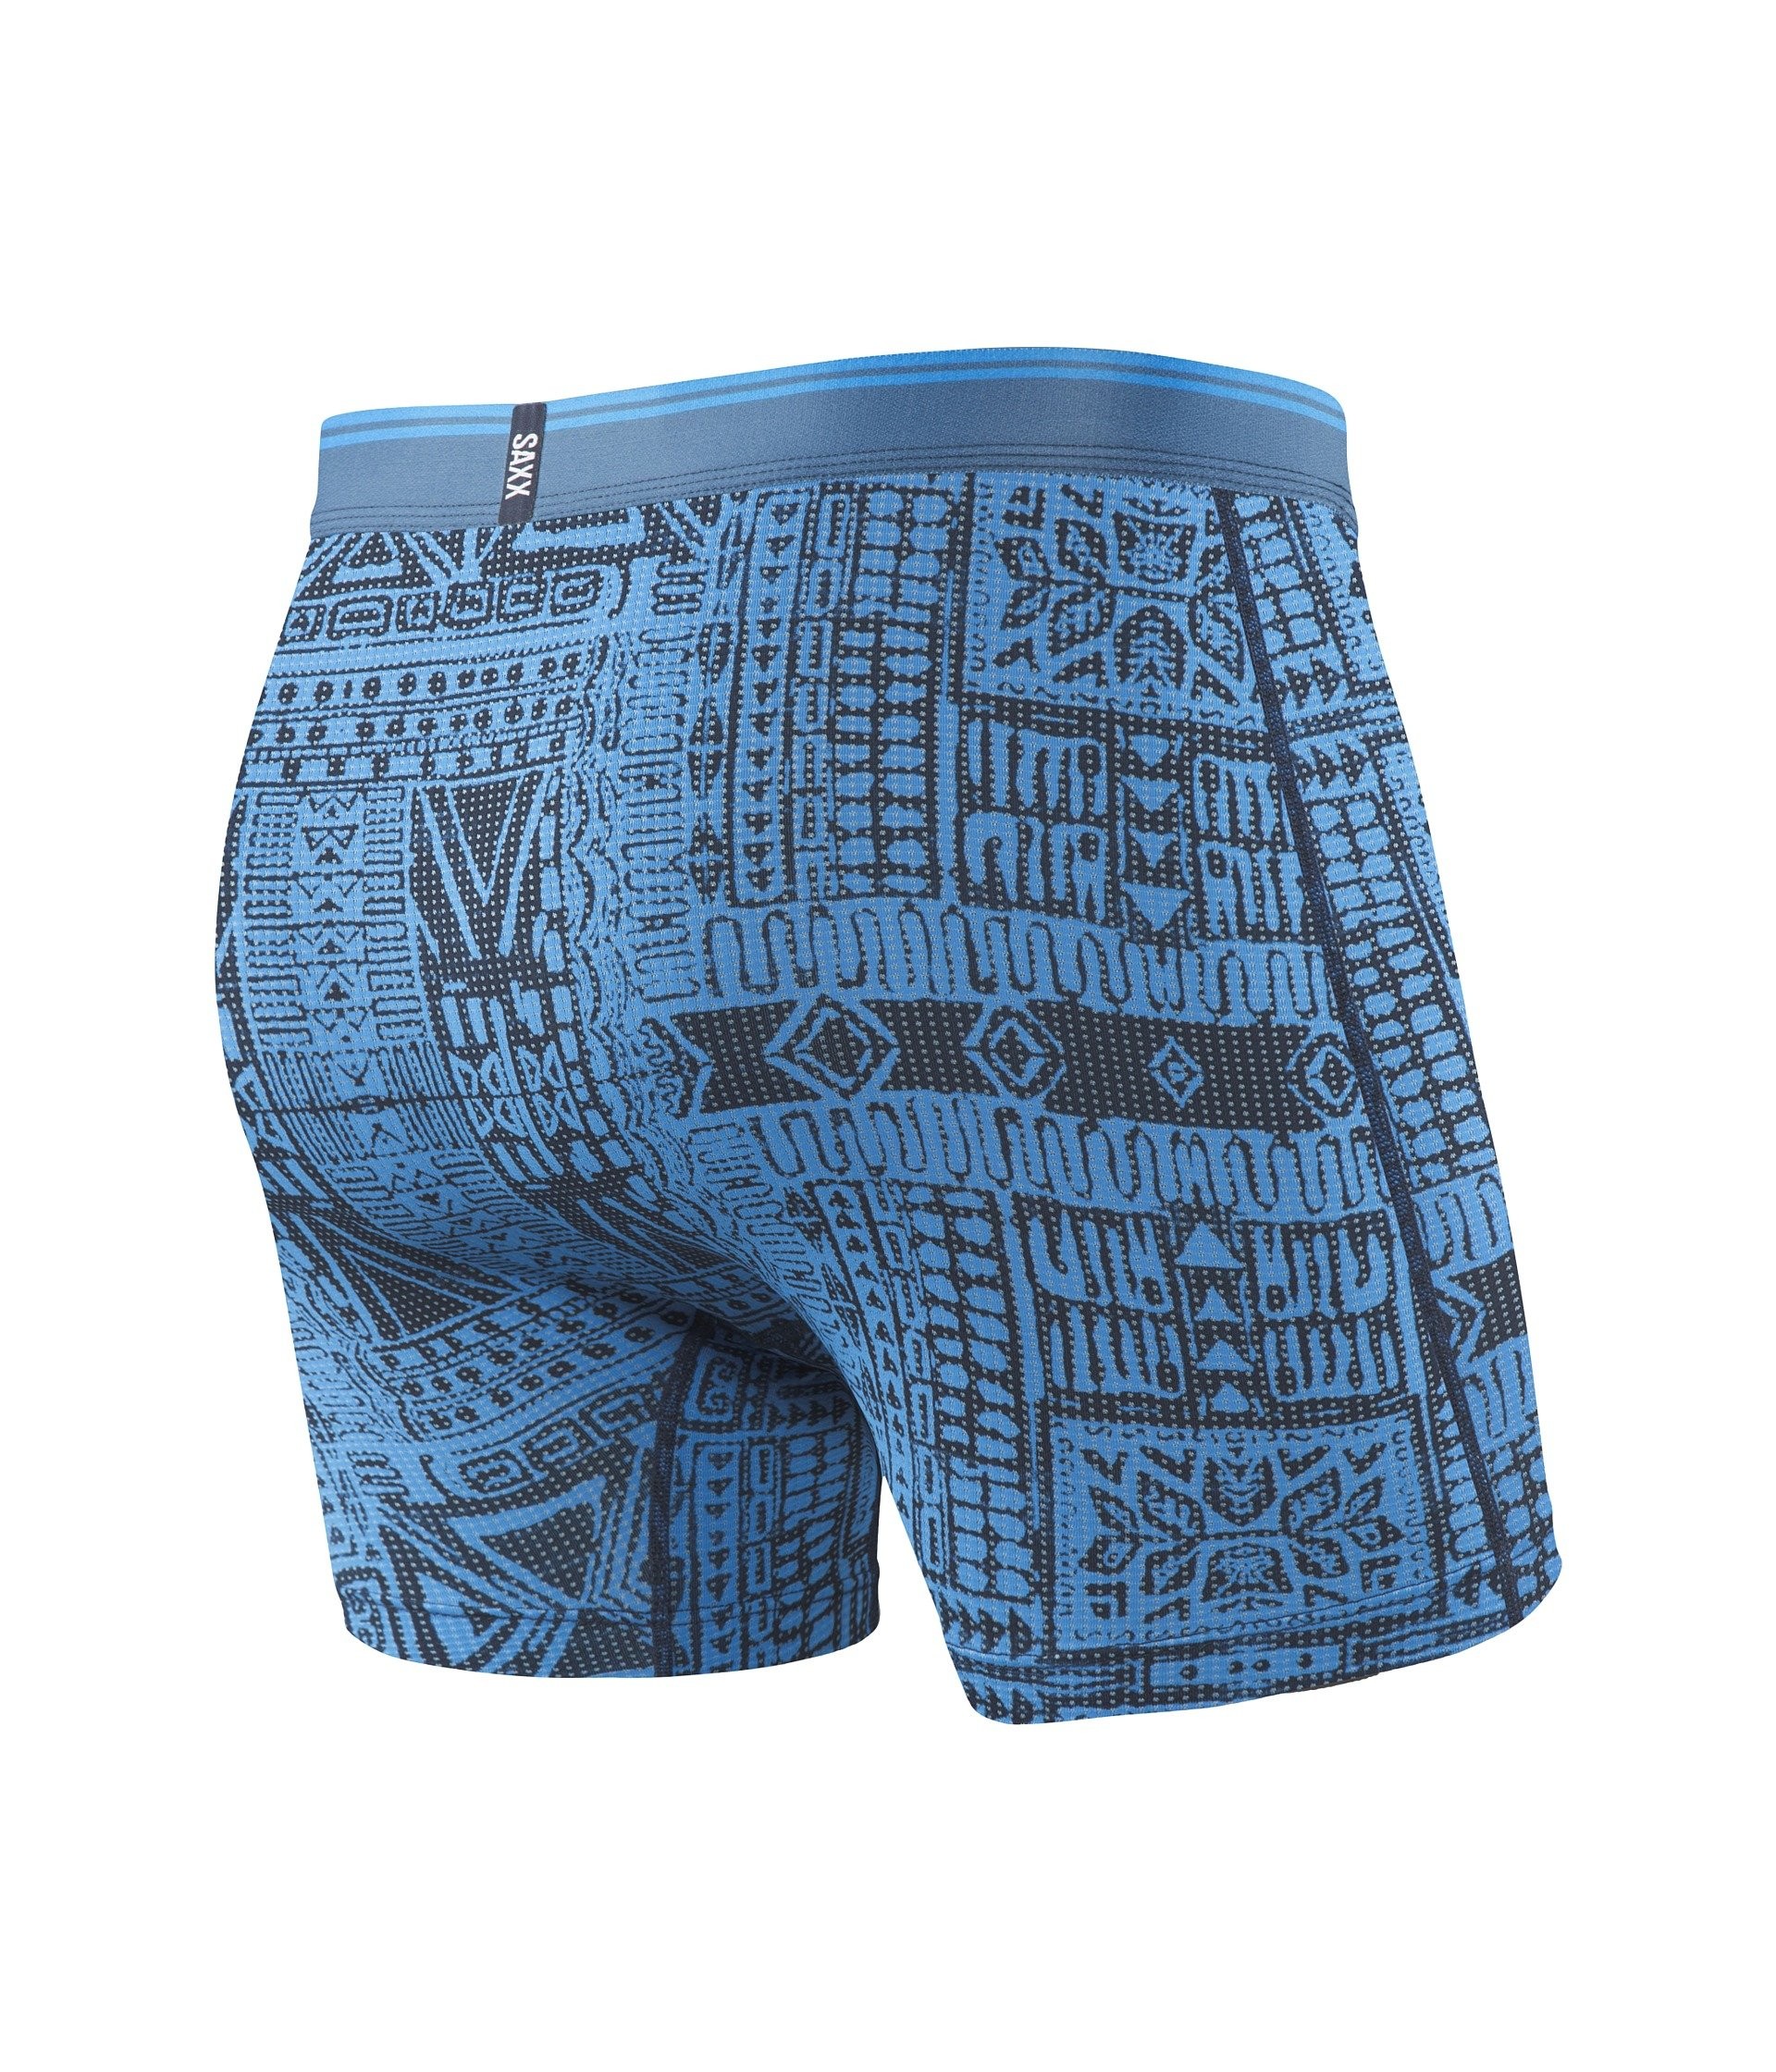 Underwear 0 Print Tribe Dive Quest Fly 2 Saxx Blue Boxer 7xd1nqpTw